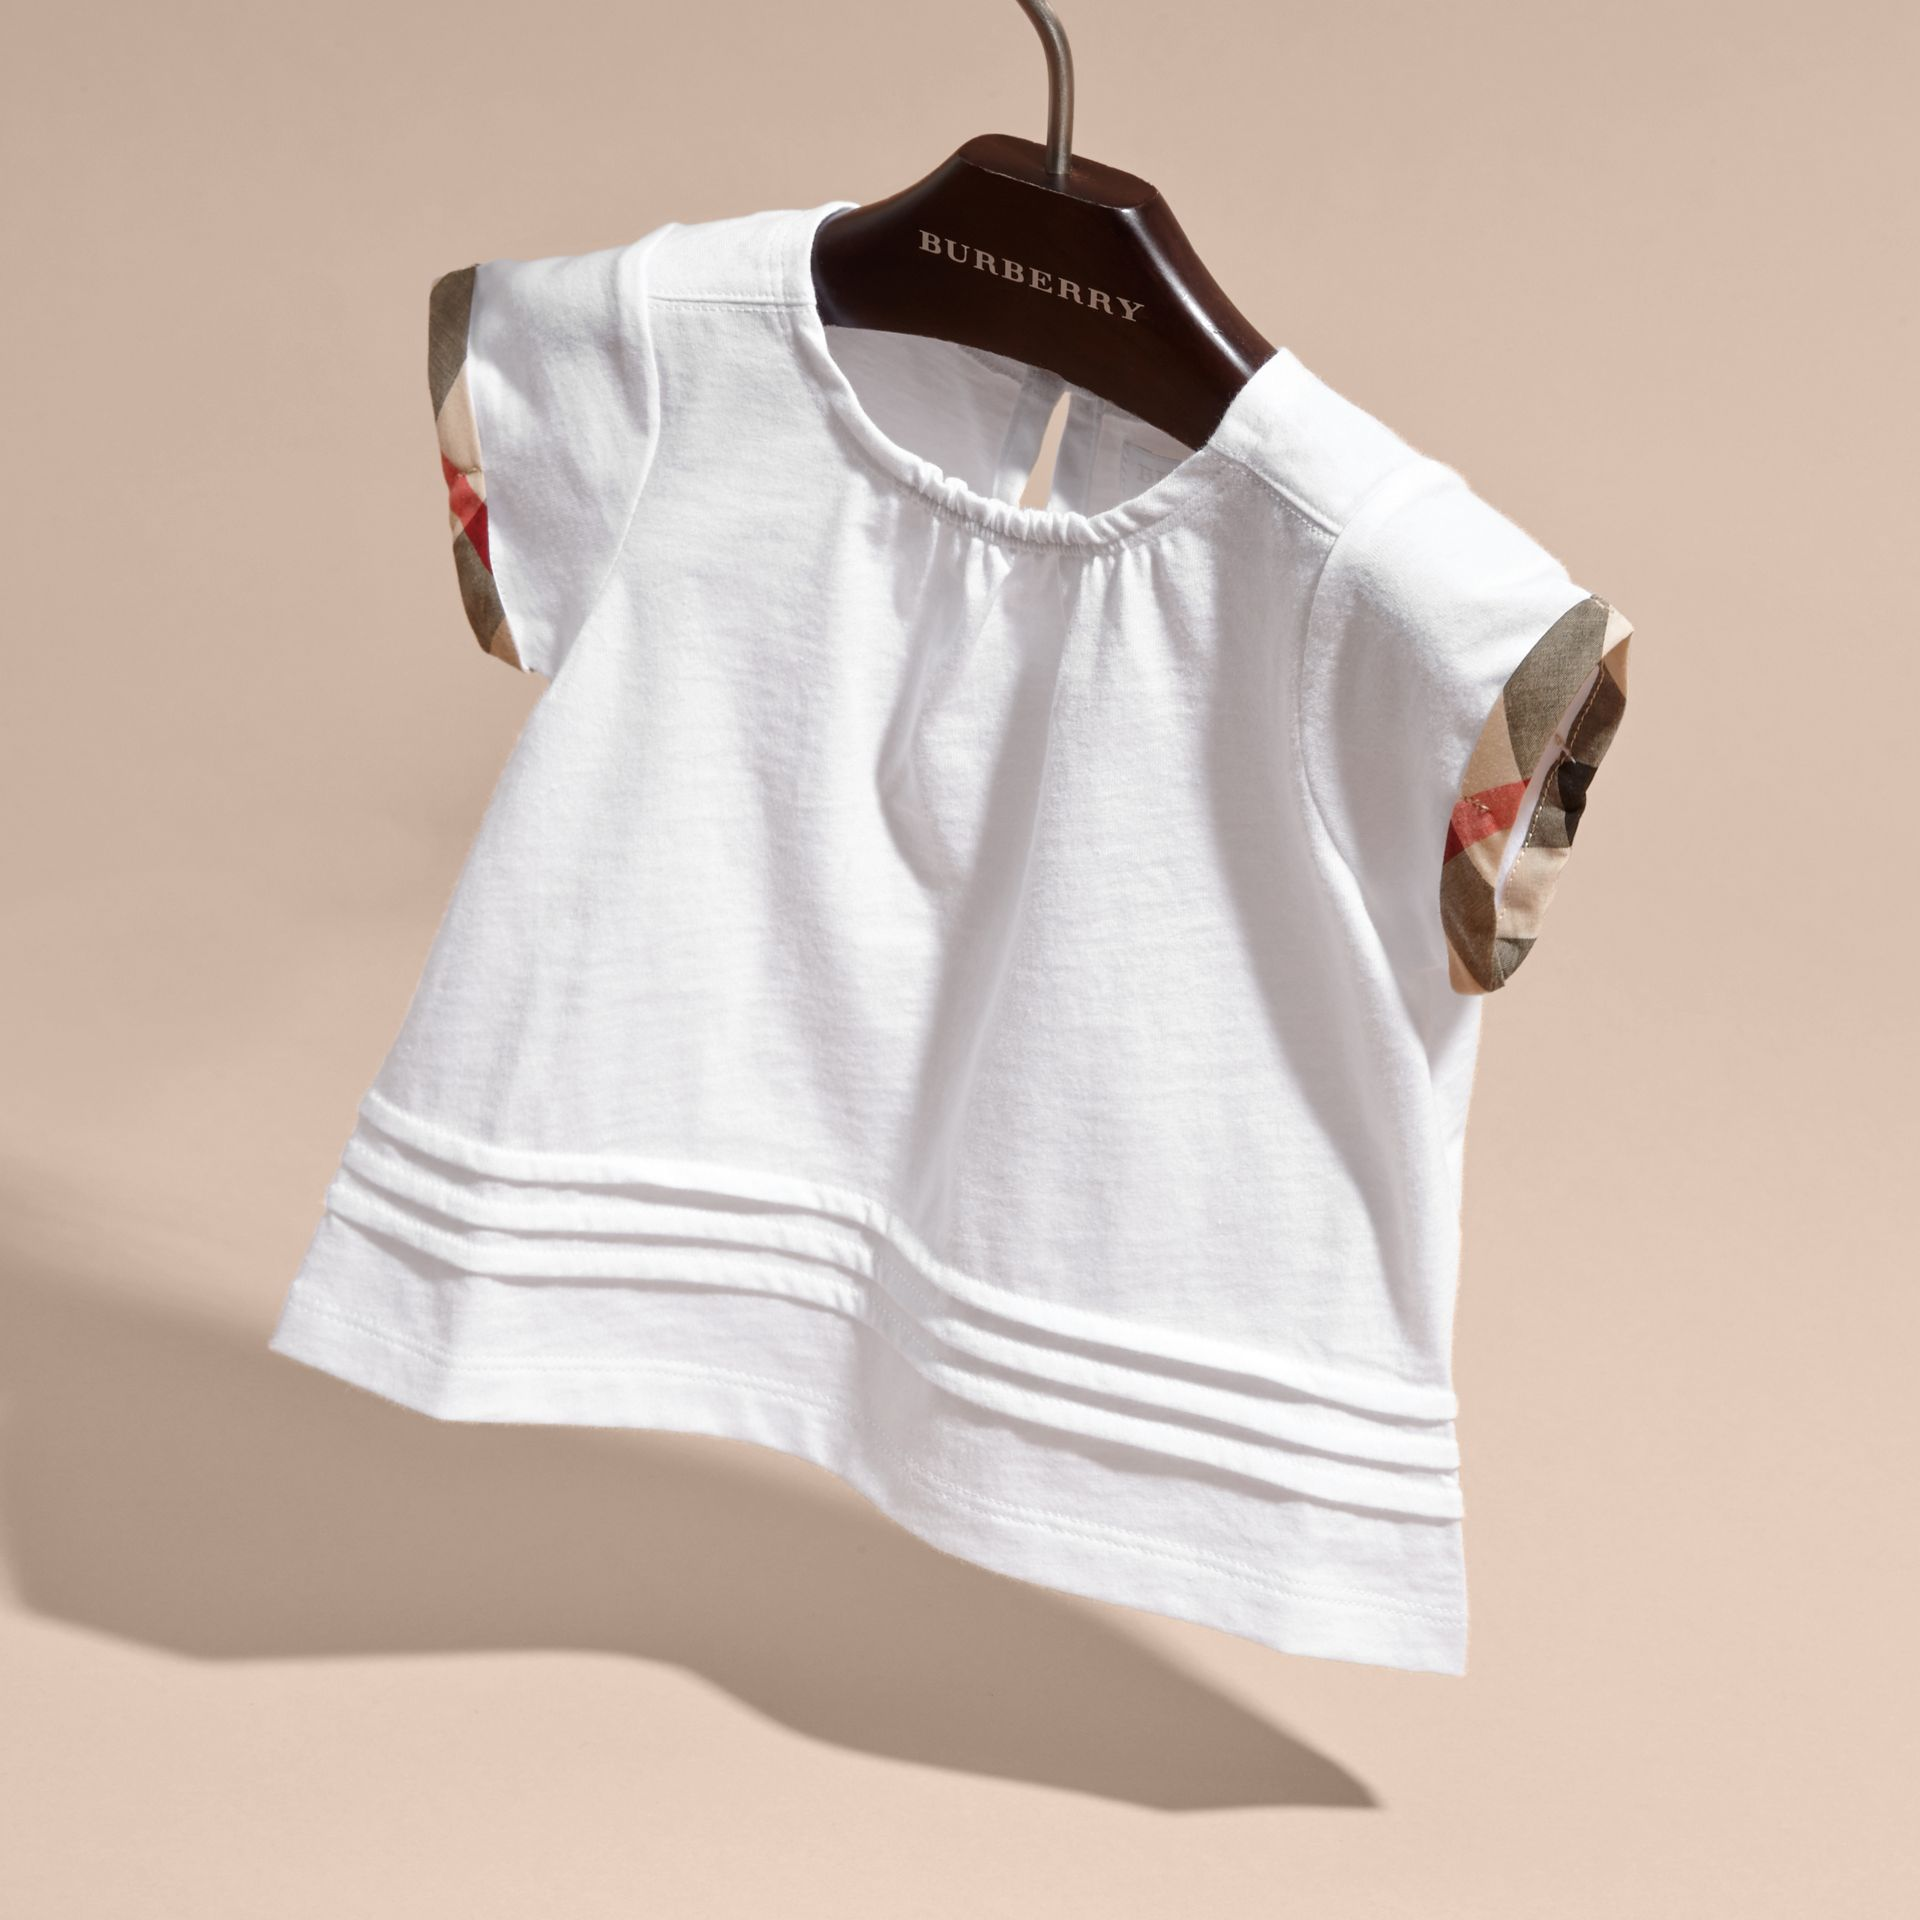 Pleat and Check Detail Cotton T-shirt in White | Burberry Australia - gallery image 3